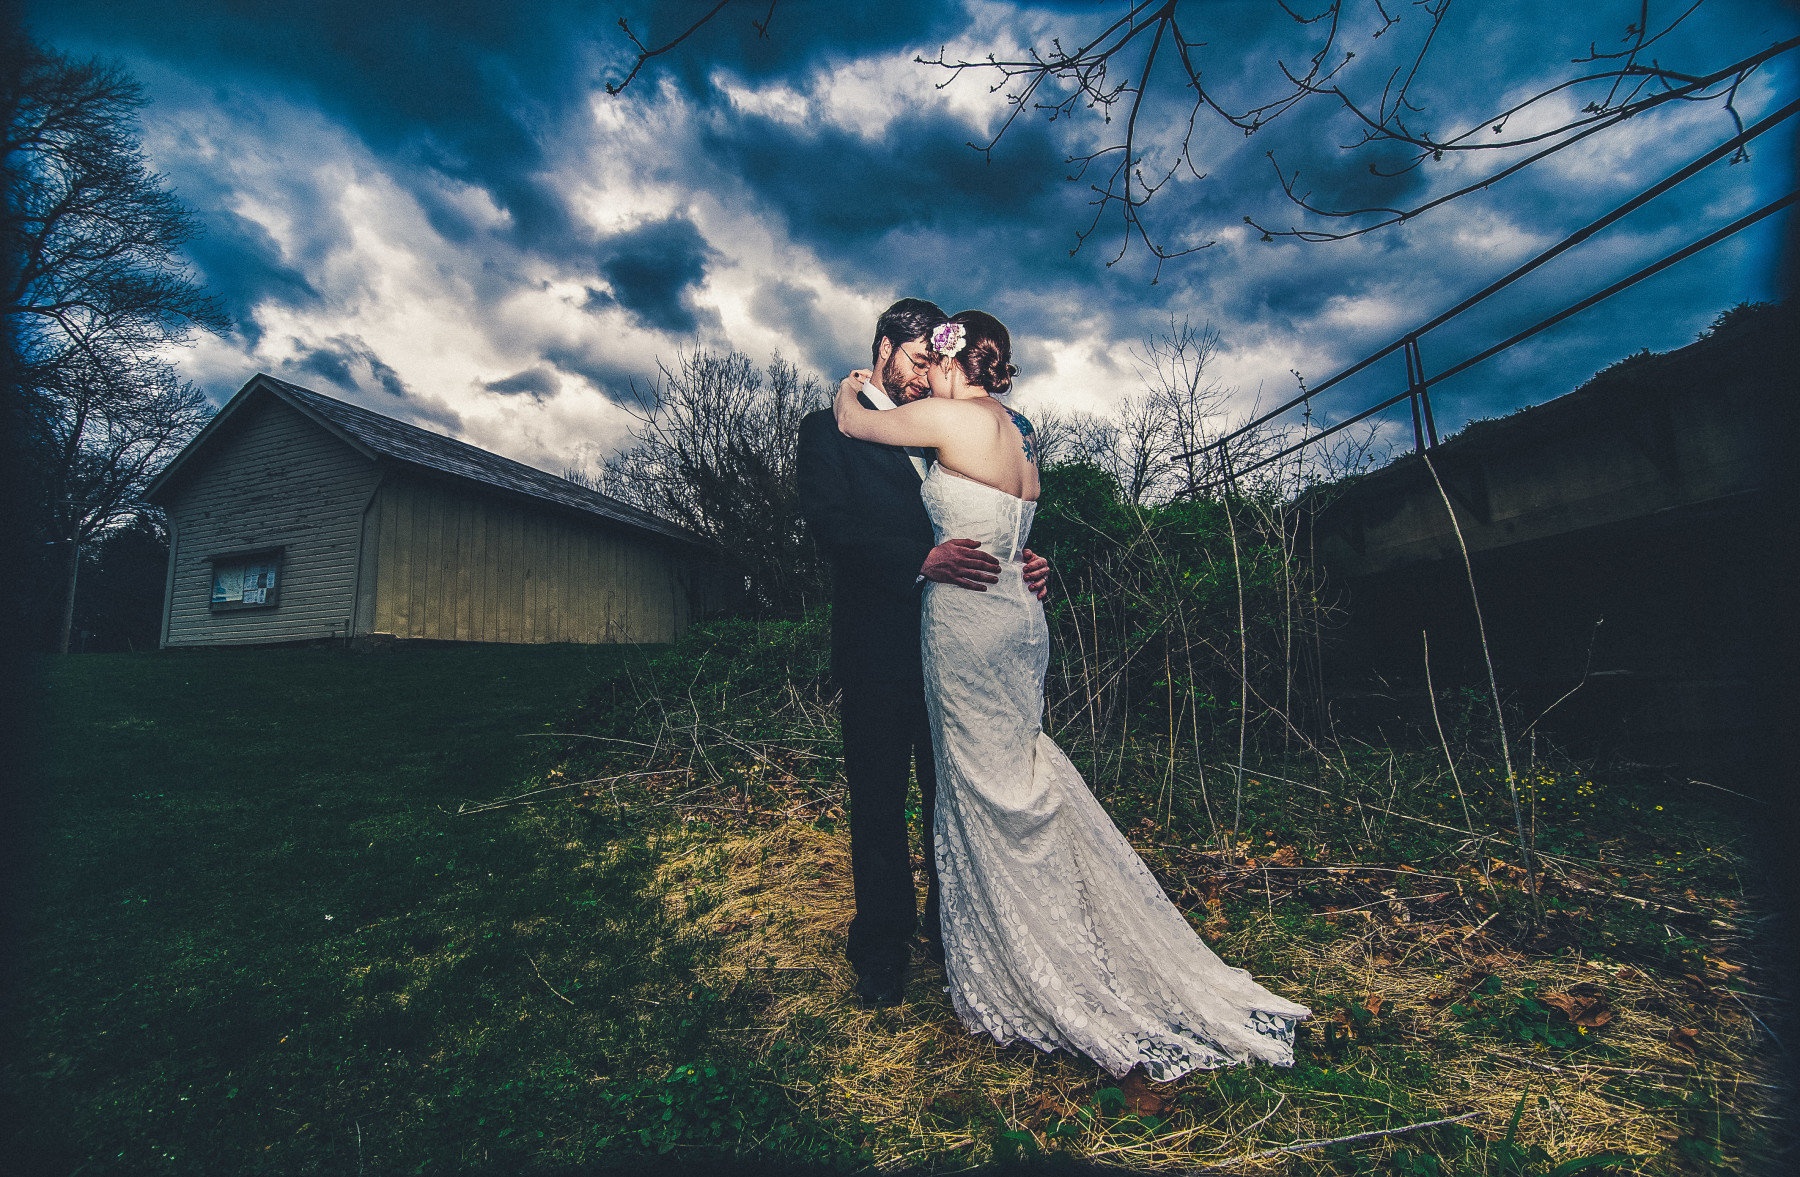 Bride and groom stand next to the Prallsville Mills before a storm on their wedding day.  I photographed this image and soon after saw an Eagle flying above.  It was the first time I saw an Eagle in the wild so it was pretty amazing.  If you are looking for New Jersey wedding photography at the Prallsville Mills give us a call or contact us on the Contact Me page.   To contact the venue use this info: Operated by the Delaware River Mill Society 33 Risler Street Stockton, NJ 08559 T  609-397-3586